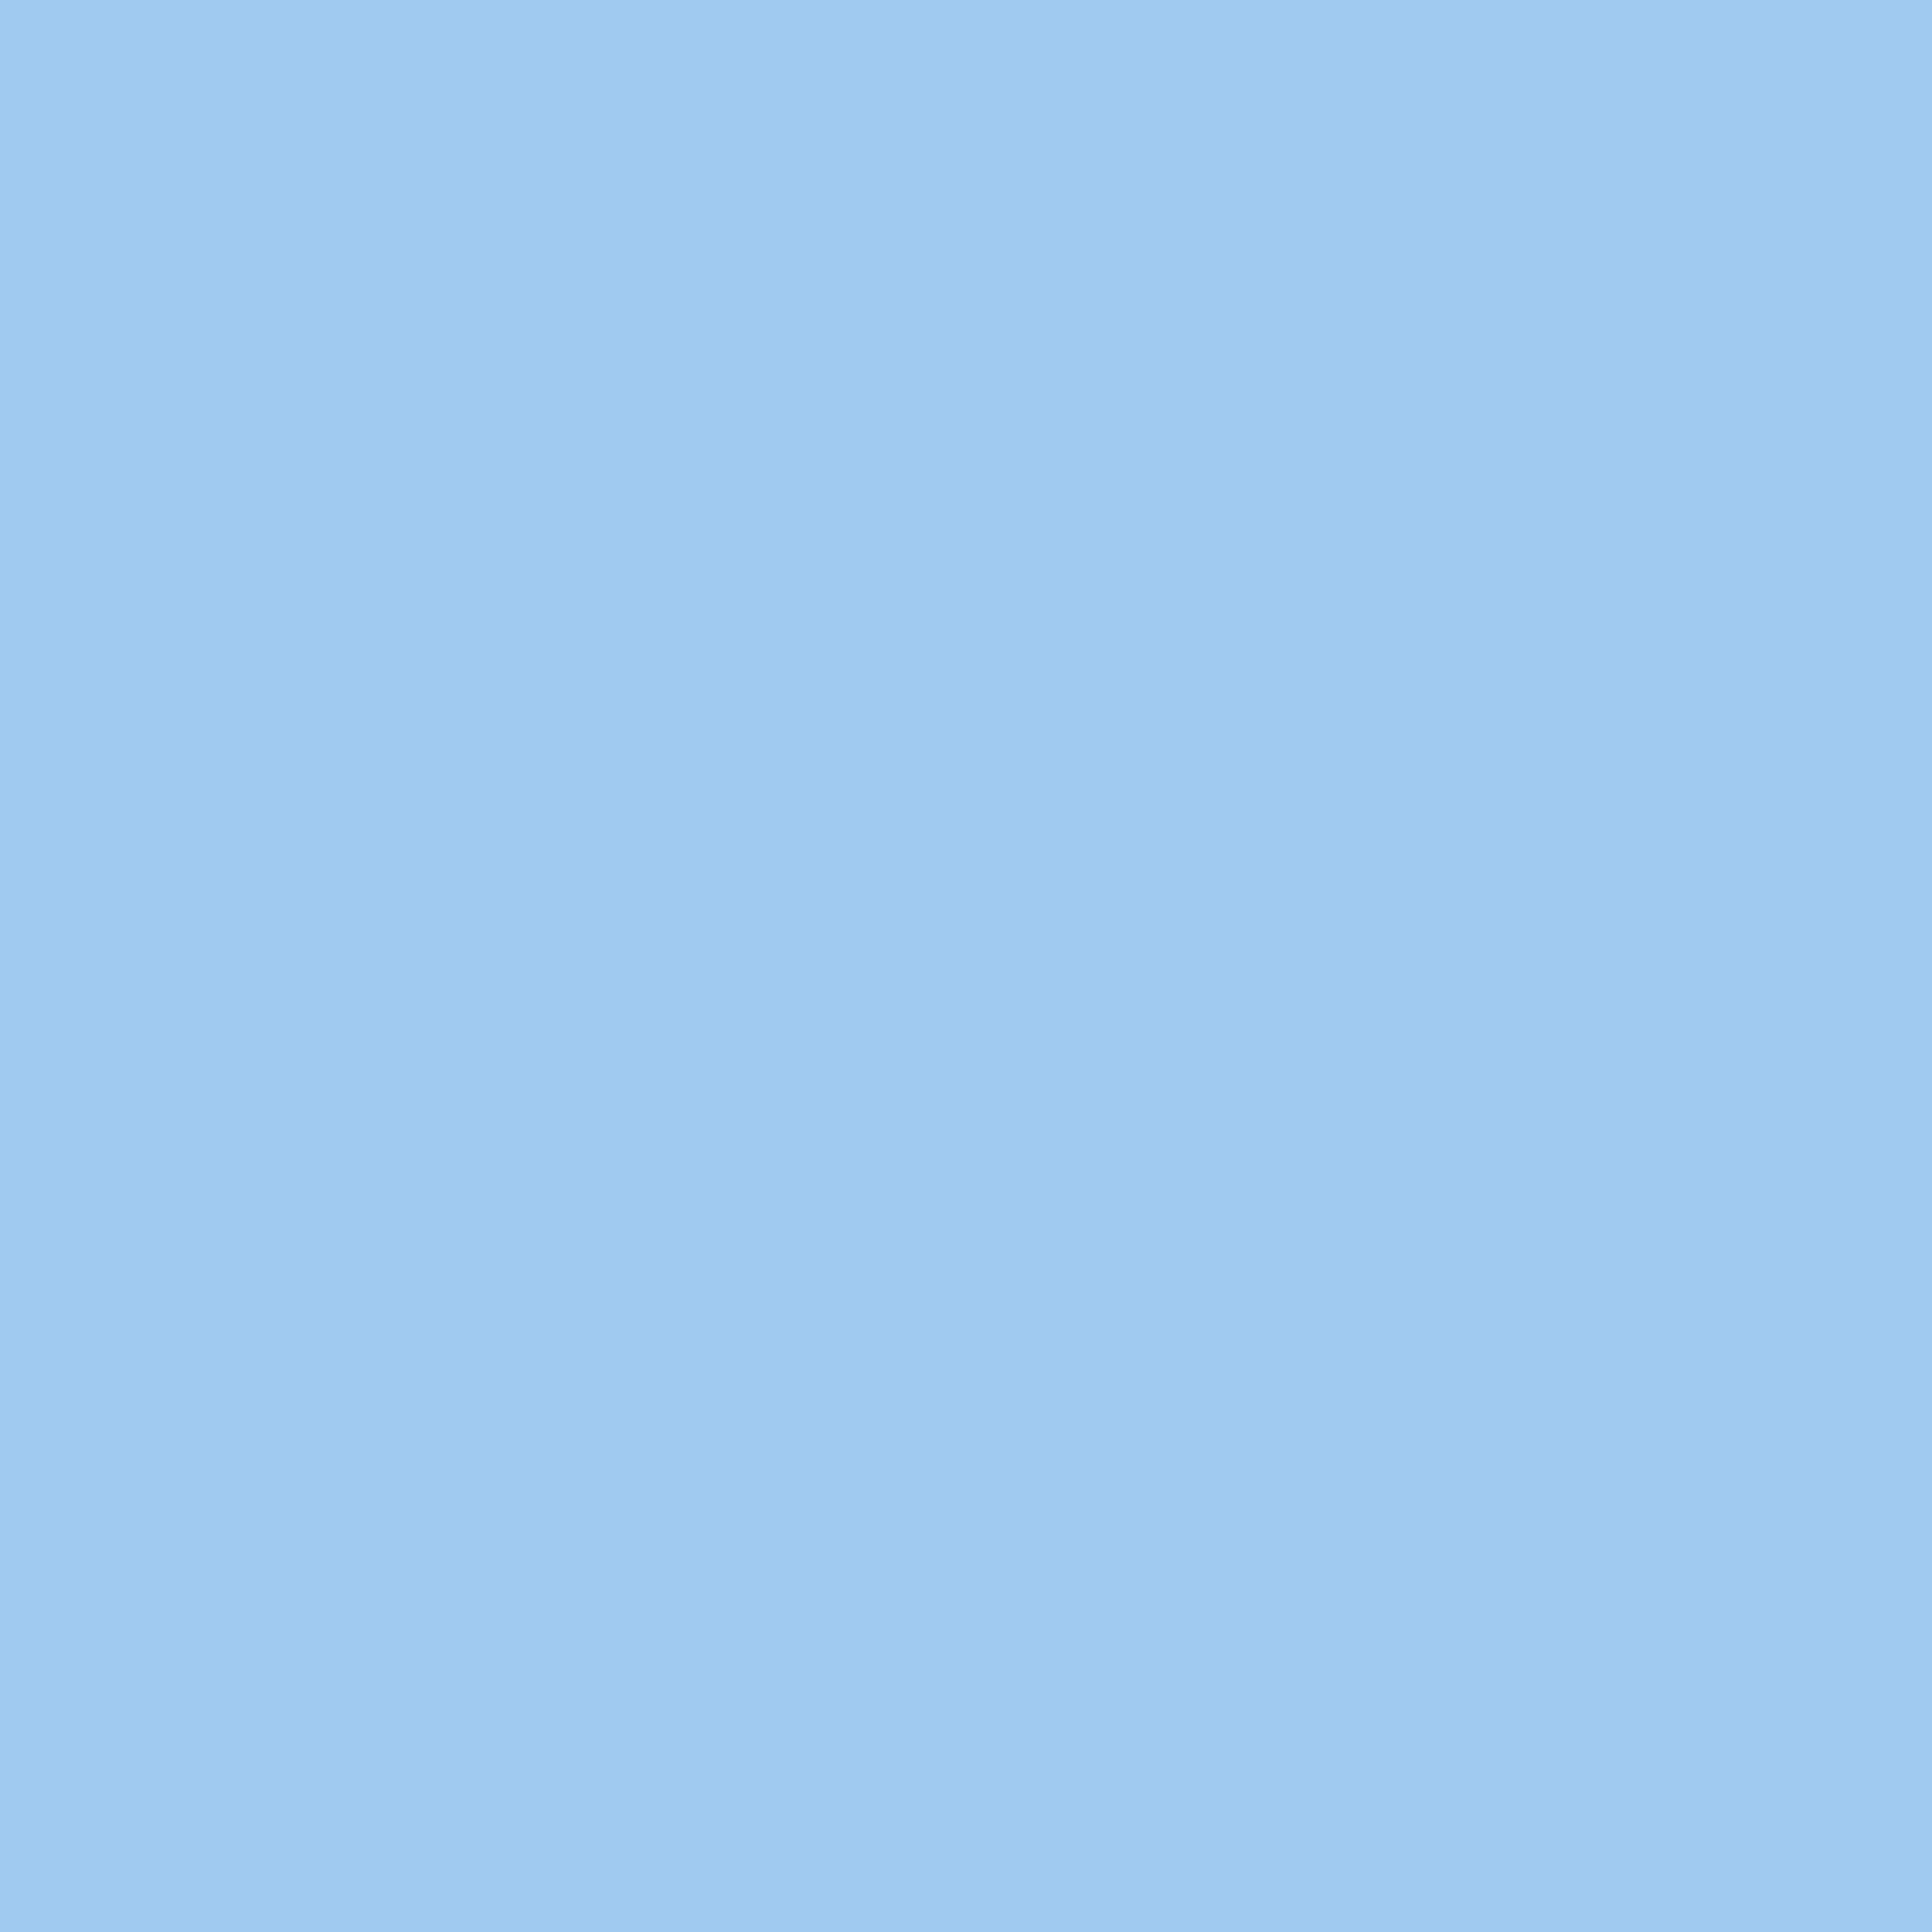 2732x2732 Baby Blue Eyes Solid Color Background